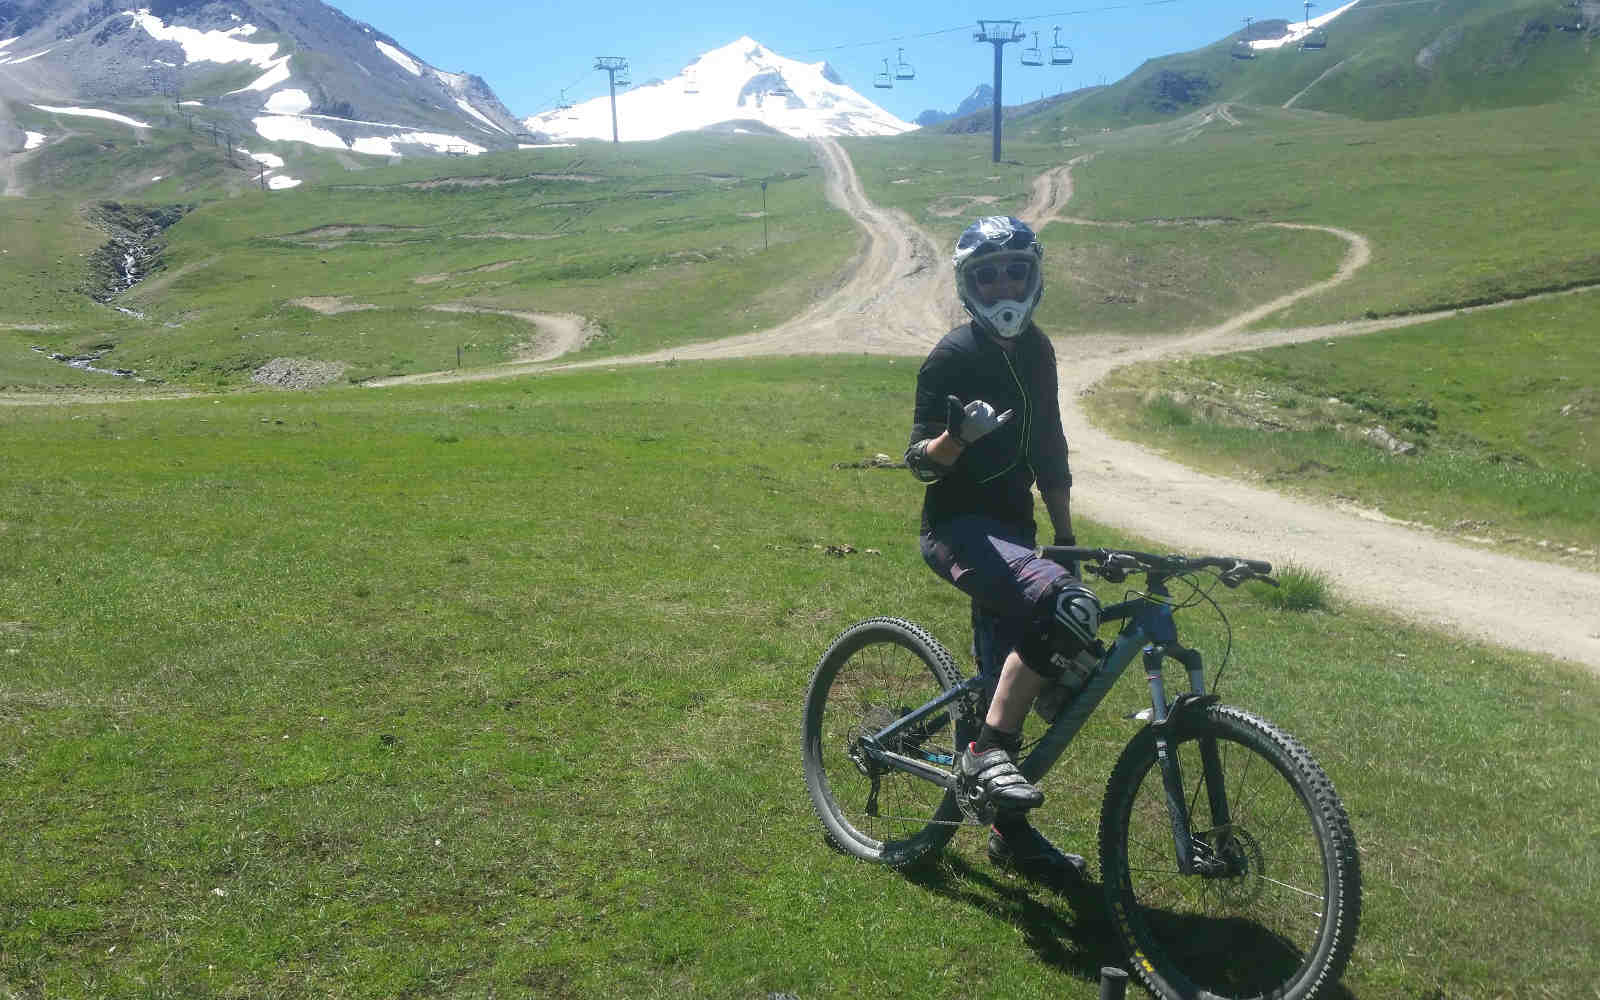 Downhill mountain biking in Tignes landscape with lifts